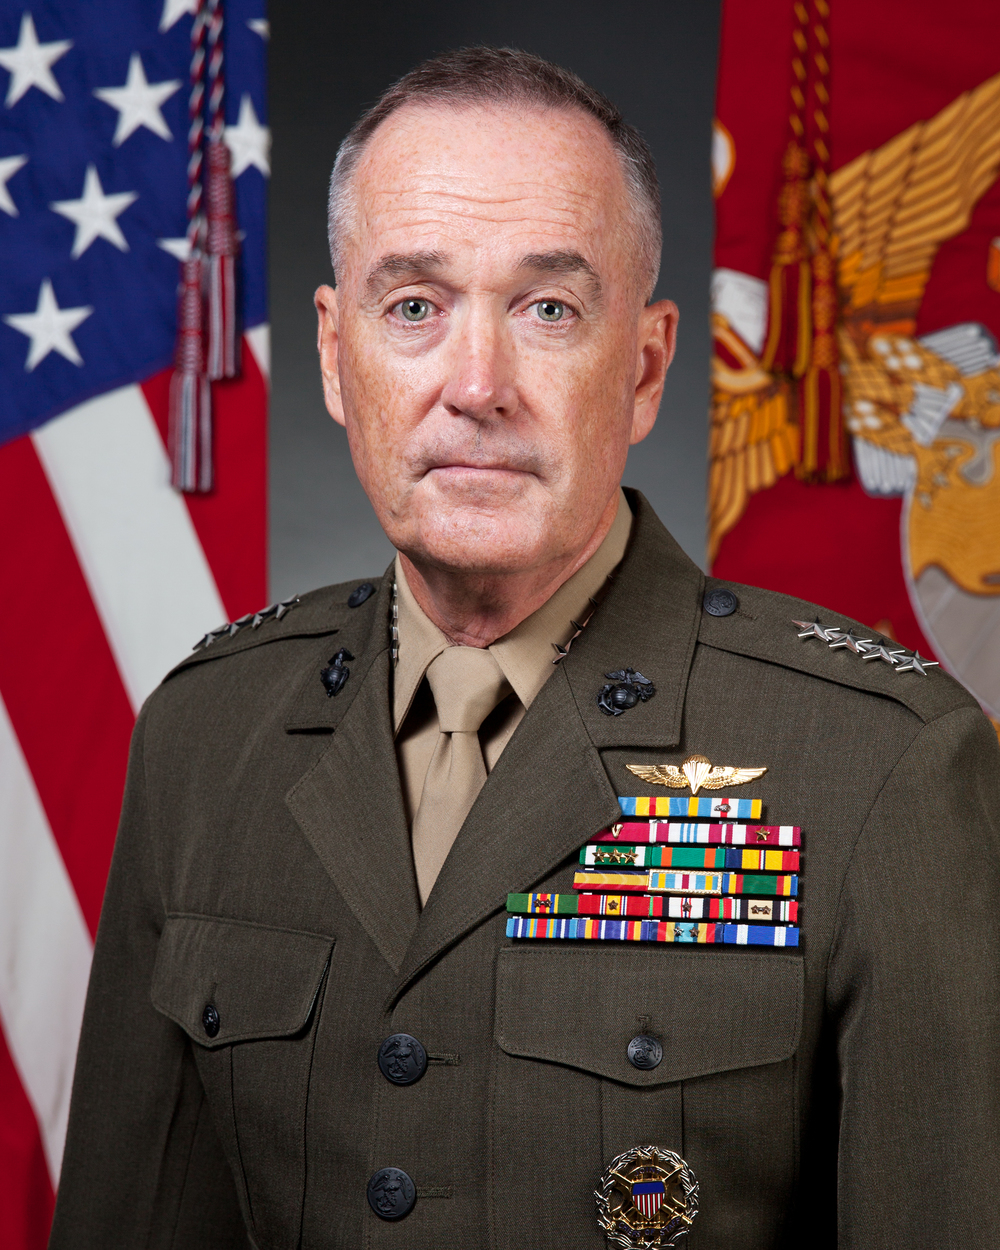 The U.S. Chairman of the Joint Chiefs of Staff Marine Gen. Joe Dunford. Credit: Department of Defense.